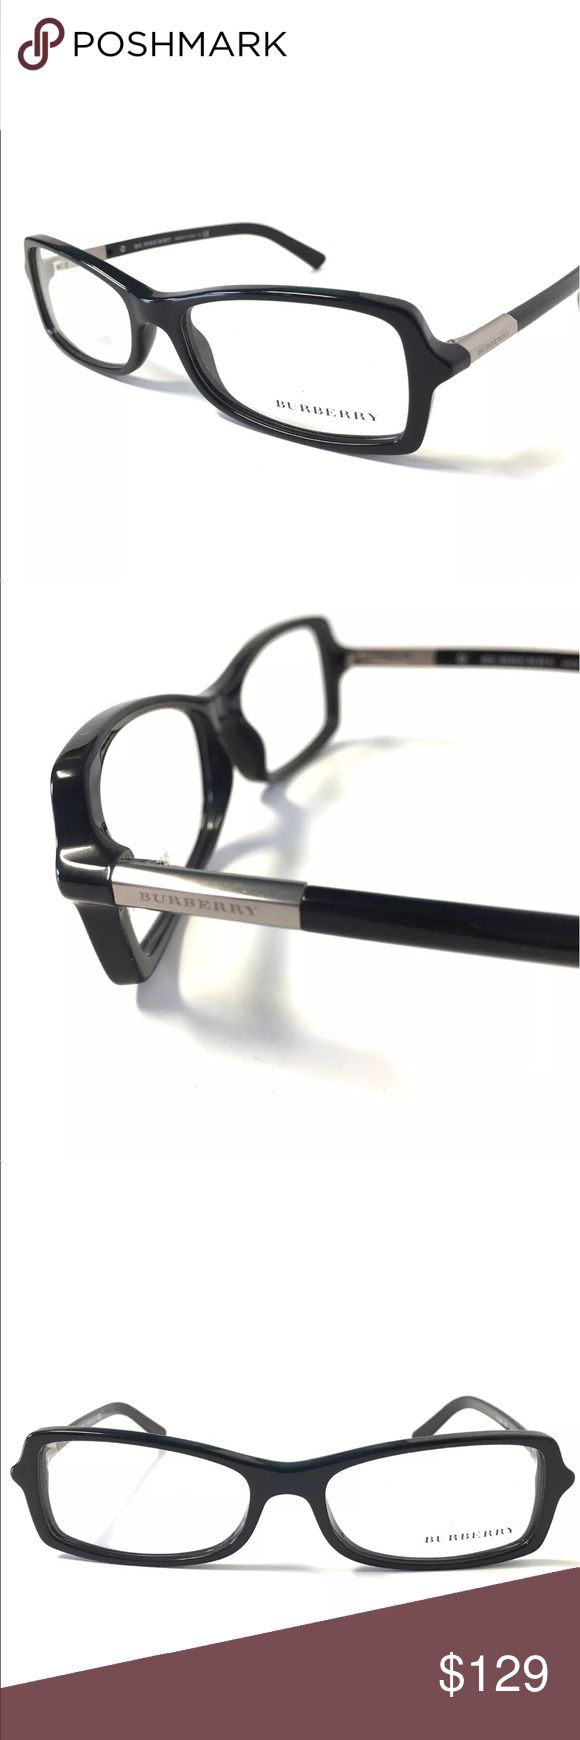 Black Silver Burberry Eyeglasses Black Silver Burberry Eyeglasses  Burberry Eyeglasses for Prescription lenses  SIZE: 52mm - 15mm - 135mm  100% Authentic!!!  Includes a Burberry Case. No Tags Burberry Accessories Glasses